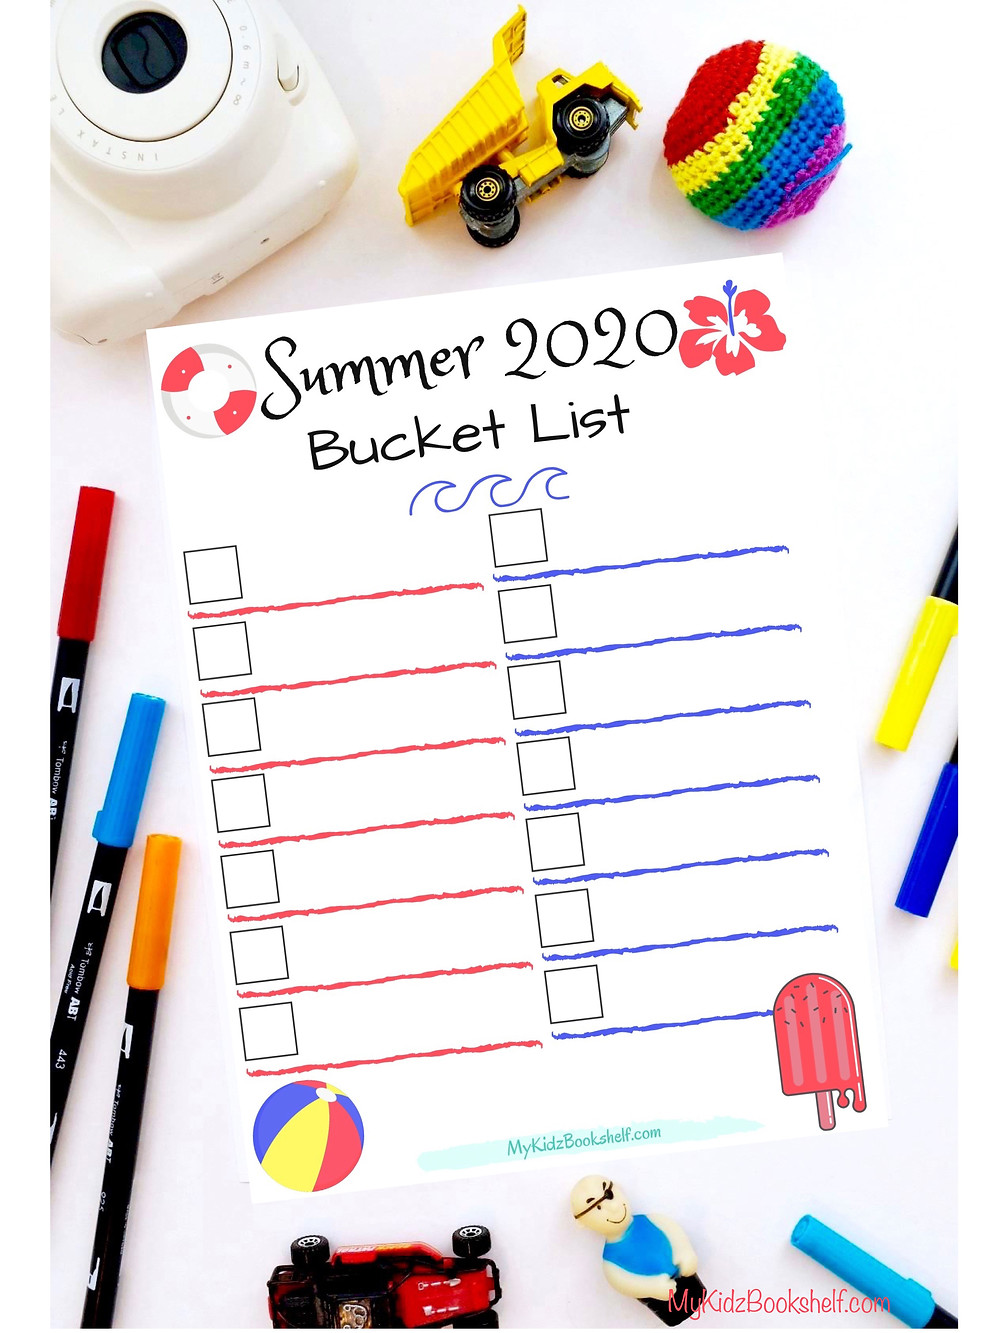 Summer 2020 Bucket List Fill in printable with popsicle and beach ball